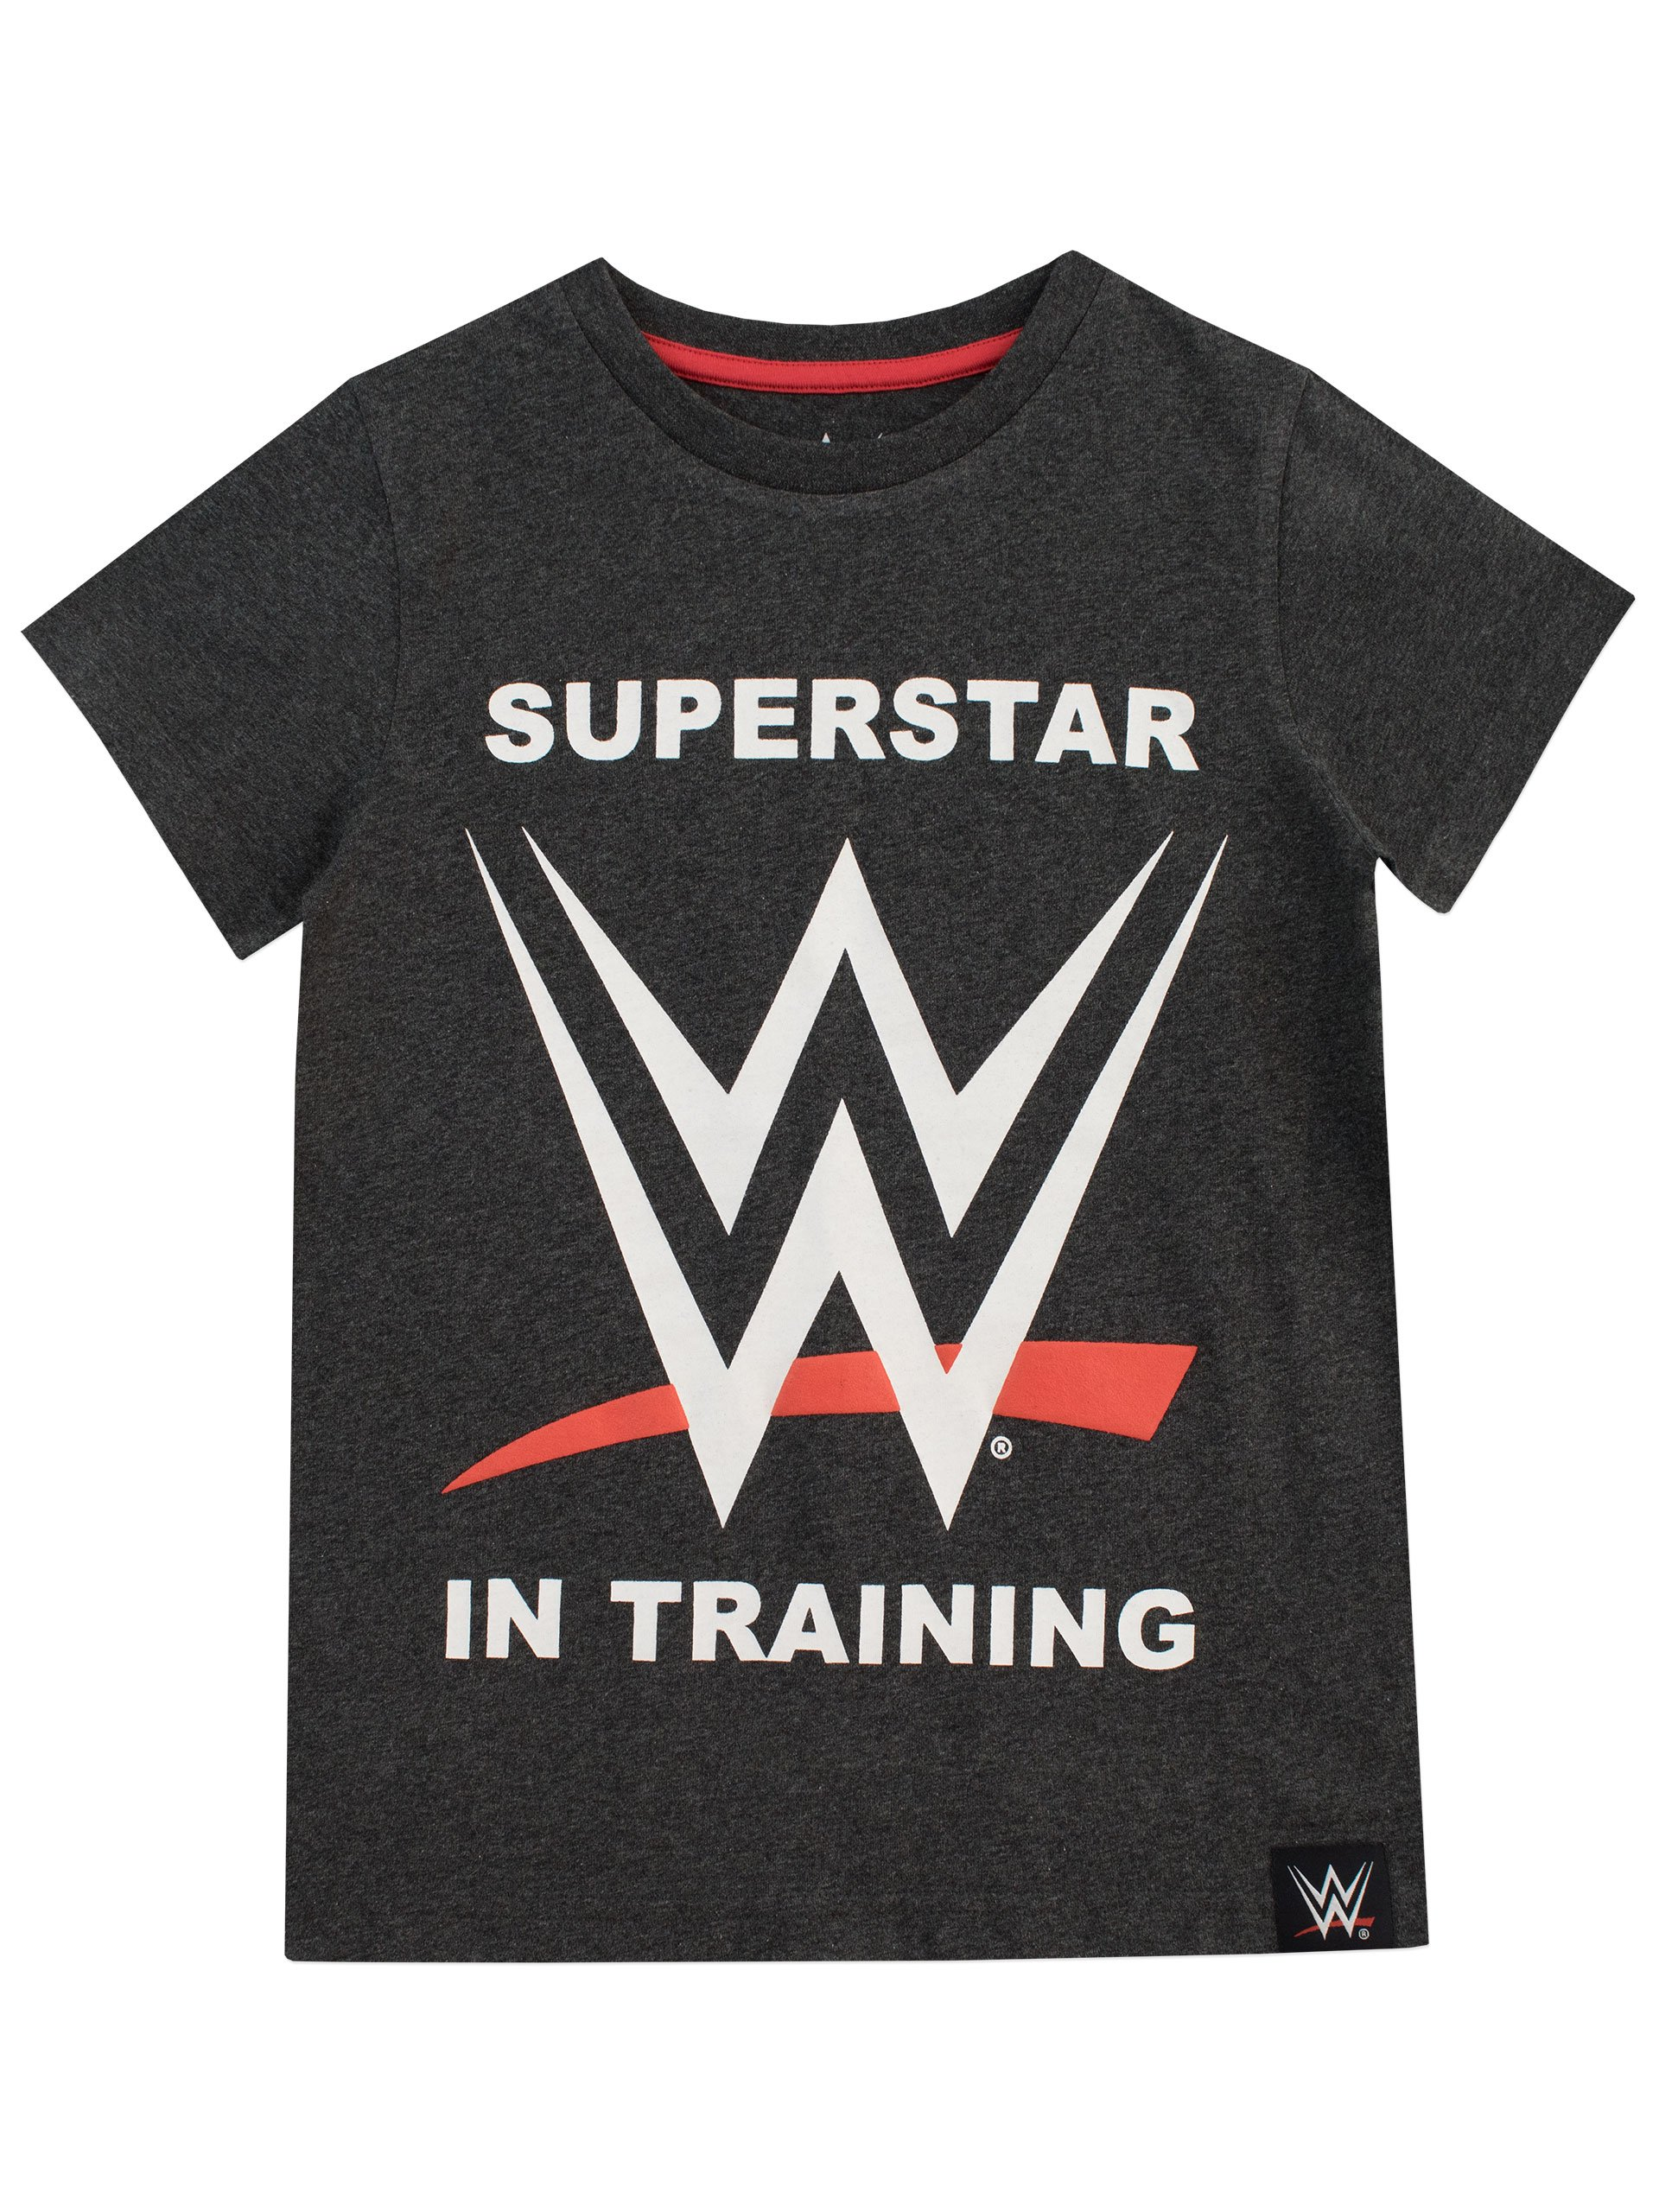 WWE Boys' World Wrestling Entertainment T-Shirt Size 7 Grey by WWE